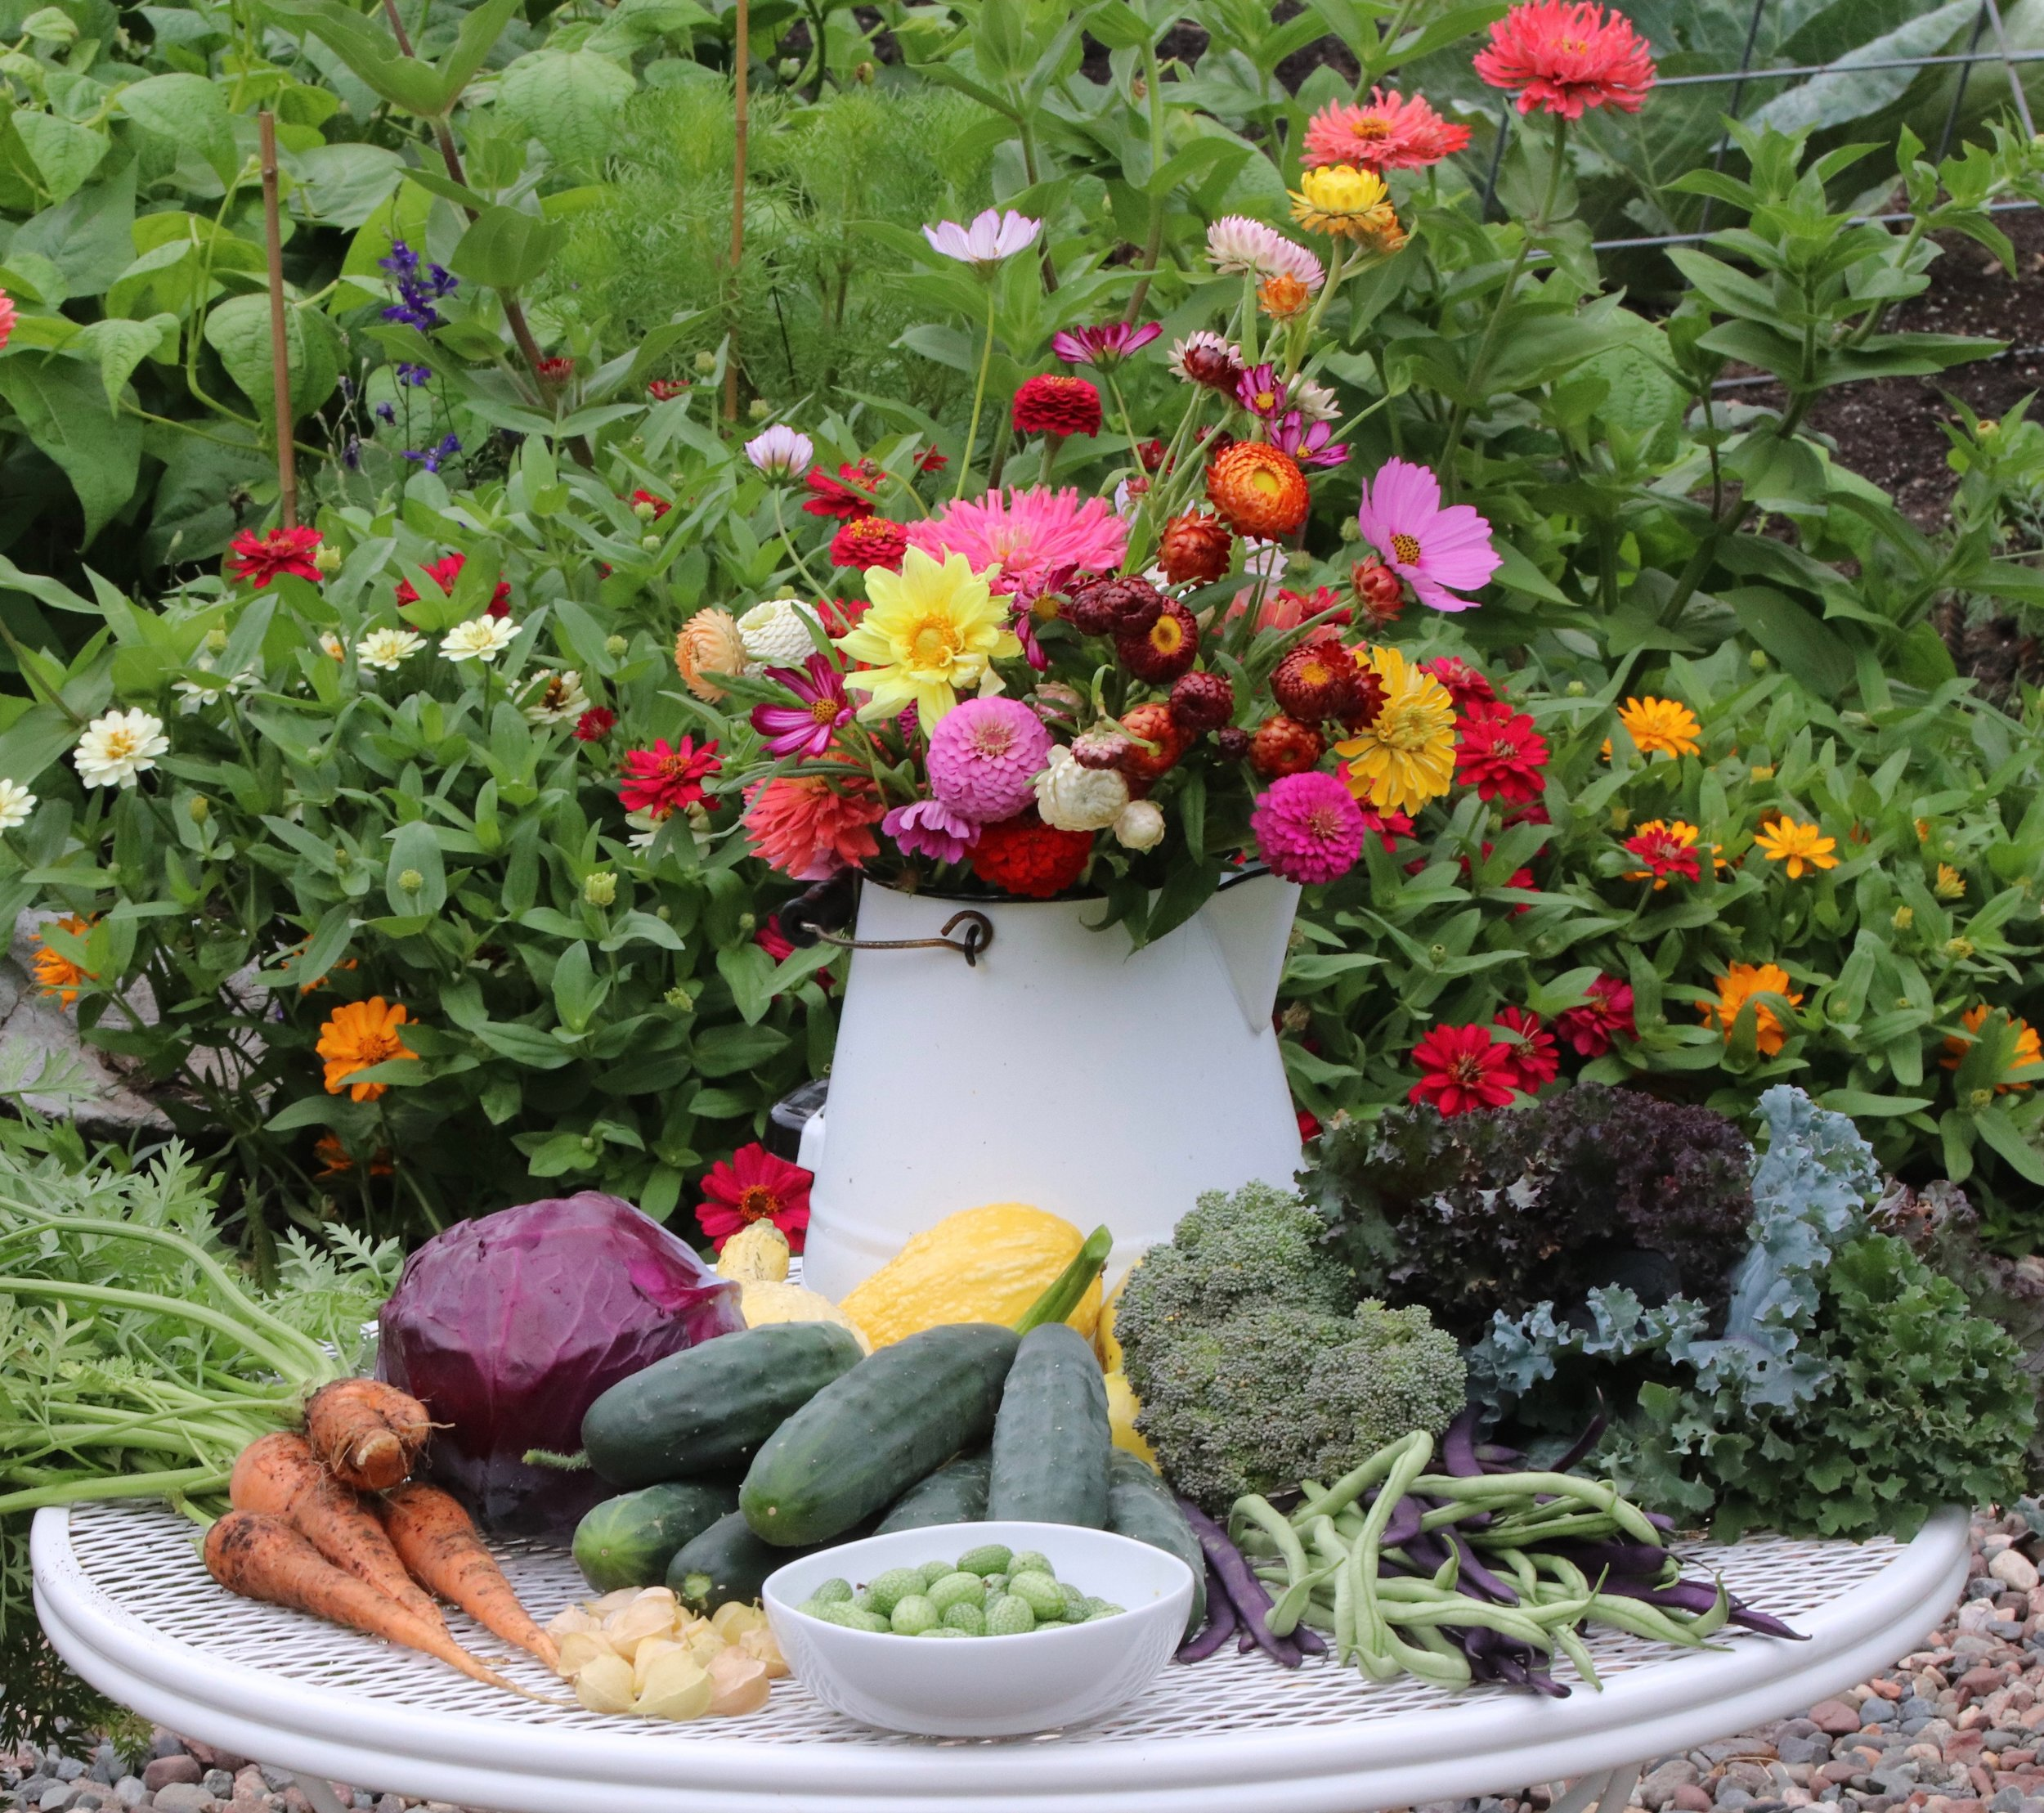 Flowers and veggies go hand in hand.